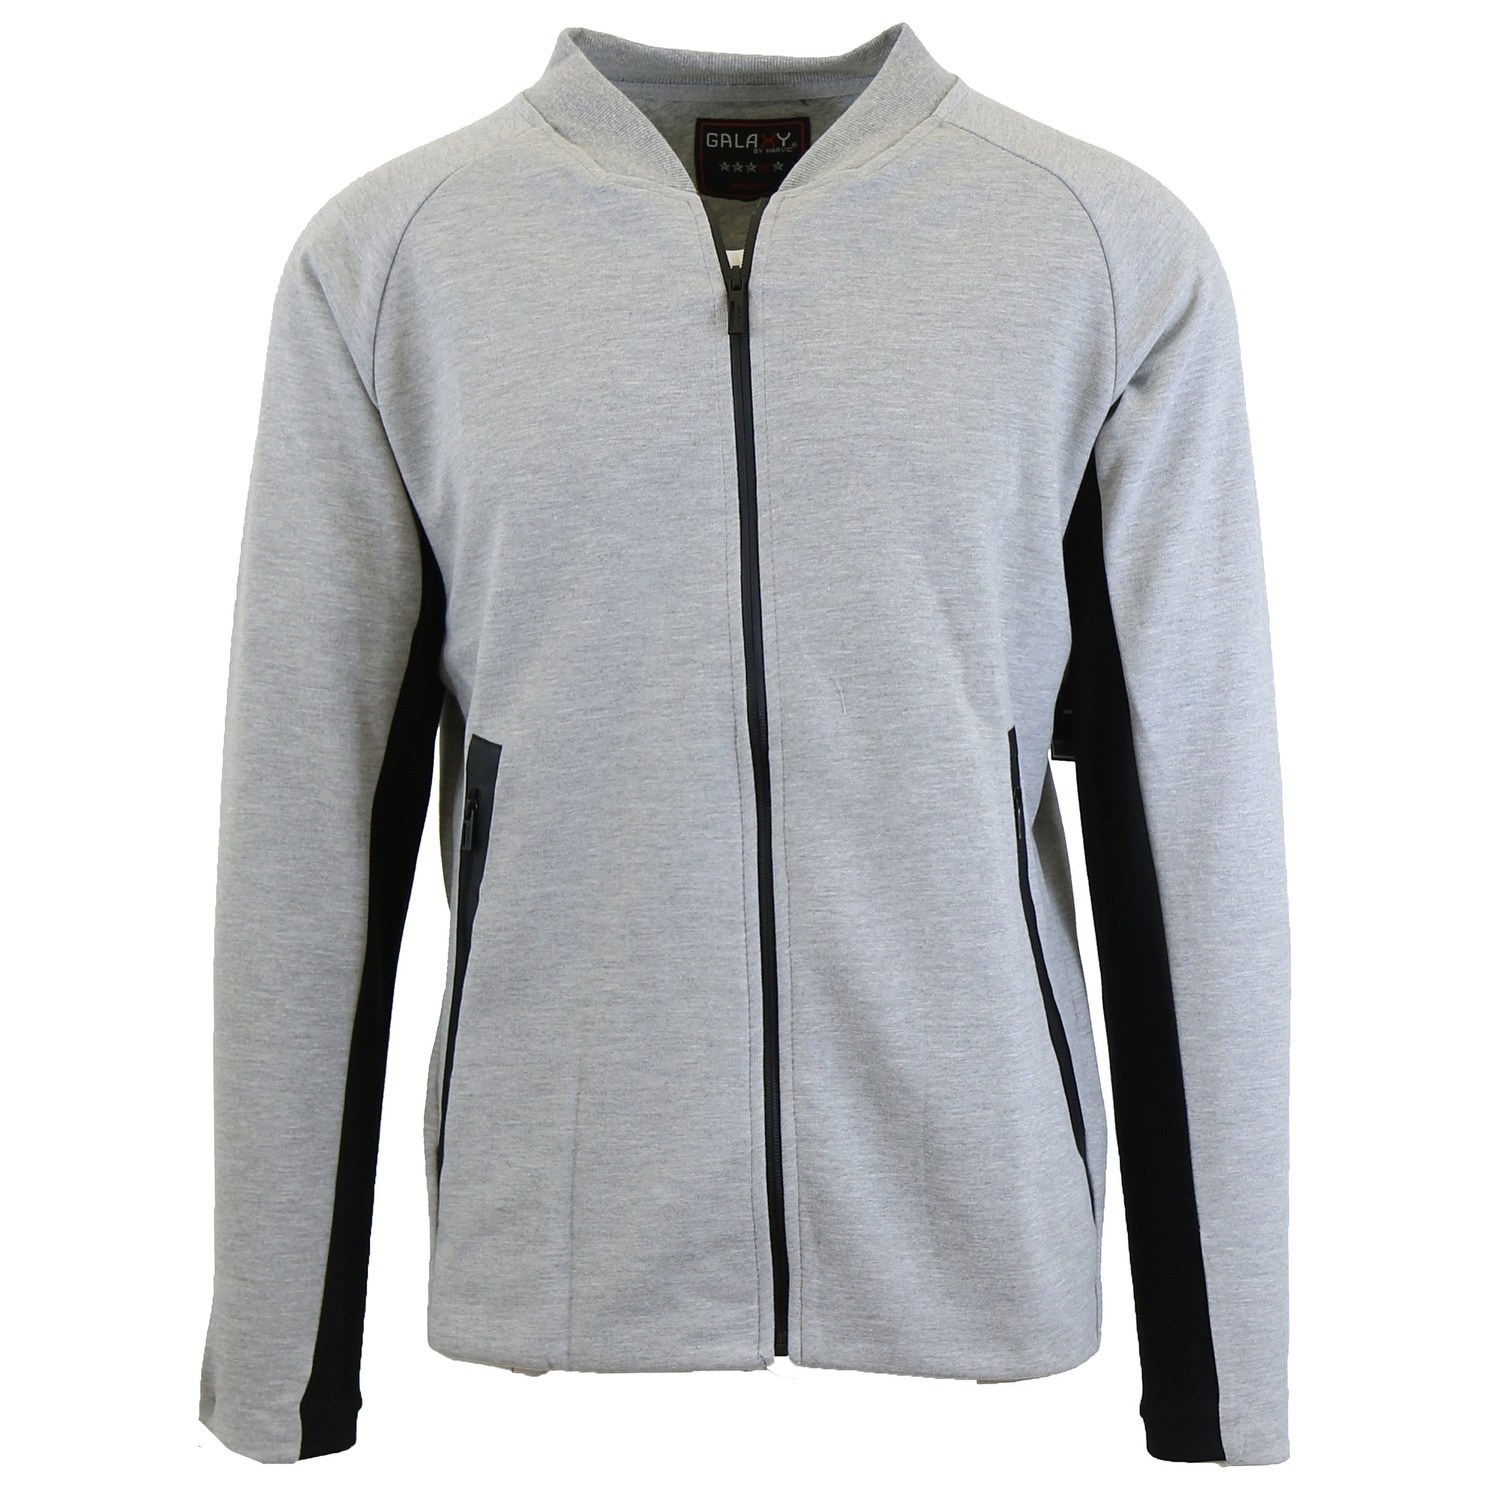 c95887c14f0c Shop Galaxy By Harvic Men s Moisture Wicking Active Tech Fleece Sweater  Jacket - On Sale - Free Shipping Today - Overstock - 26233186